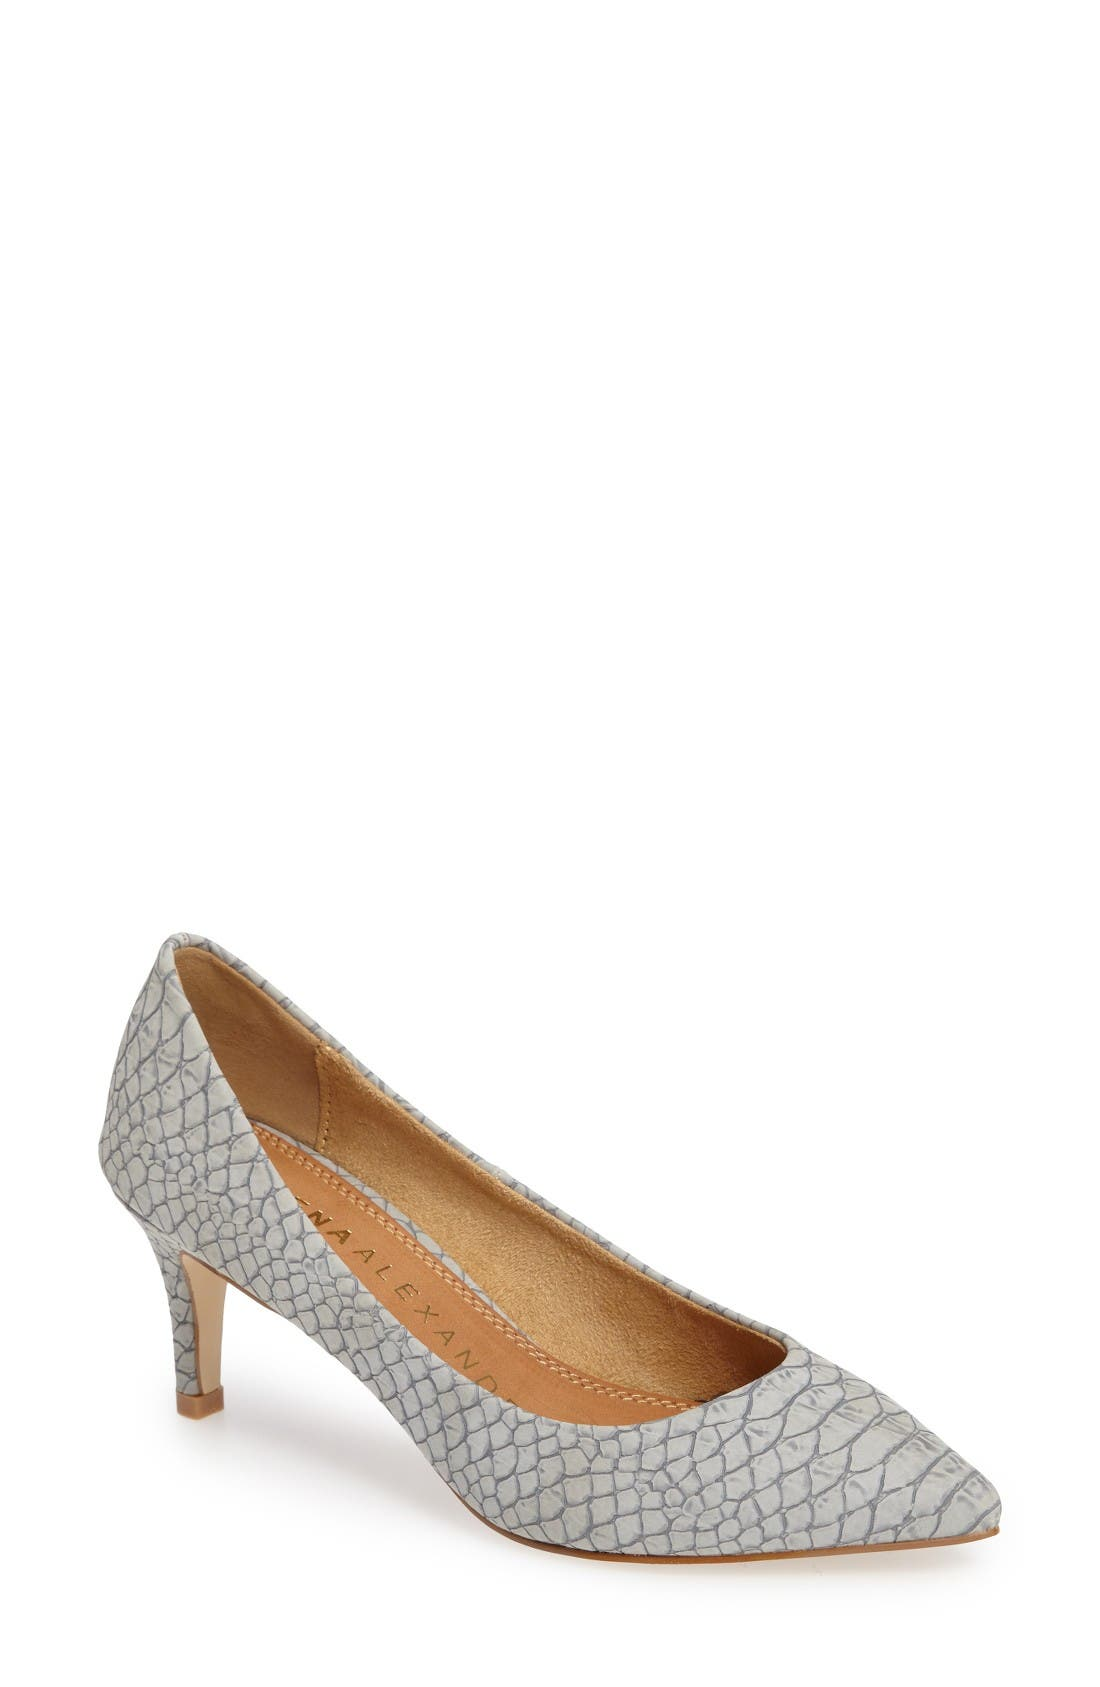 Tikka Pointy Toe Pump,                         Main,                         color, Grey Faux Leather